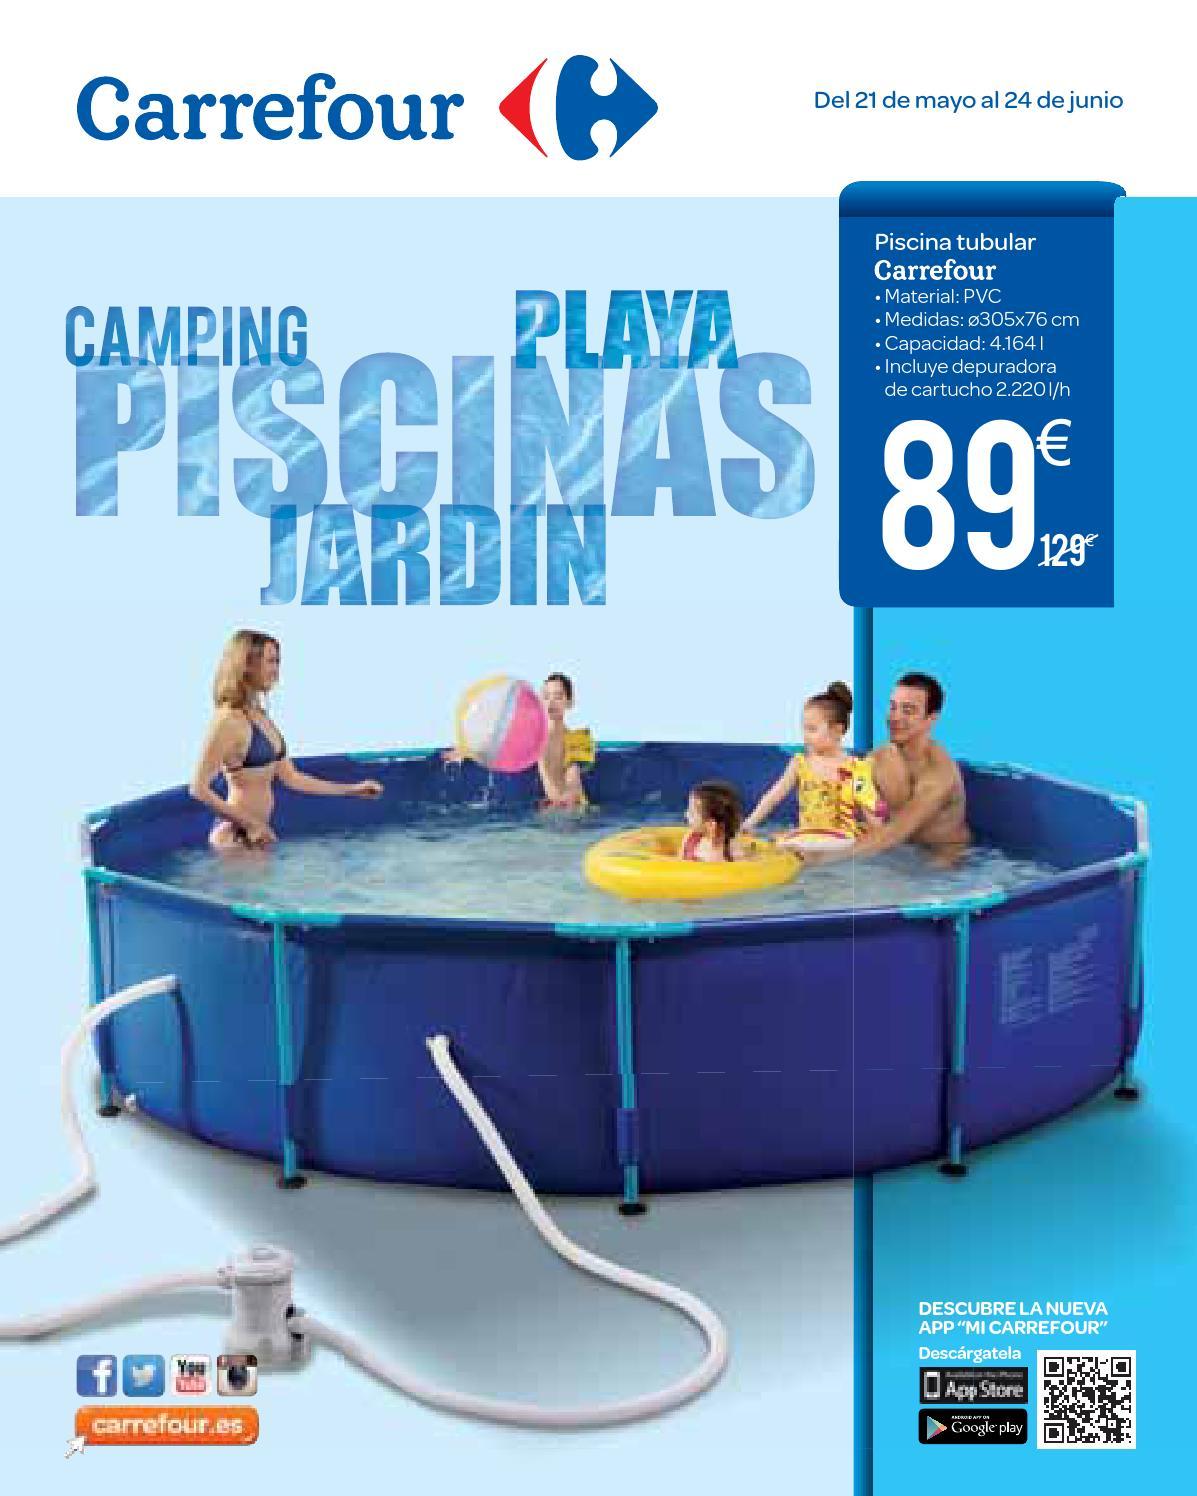 Carrefour Piscinas Bestway Venta De Piscinas En Carrefour Good Good Simple Tobogan